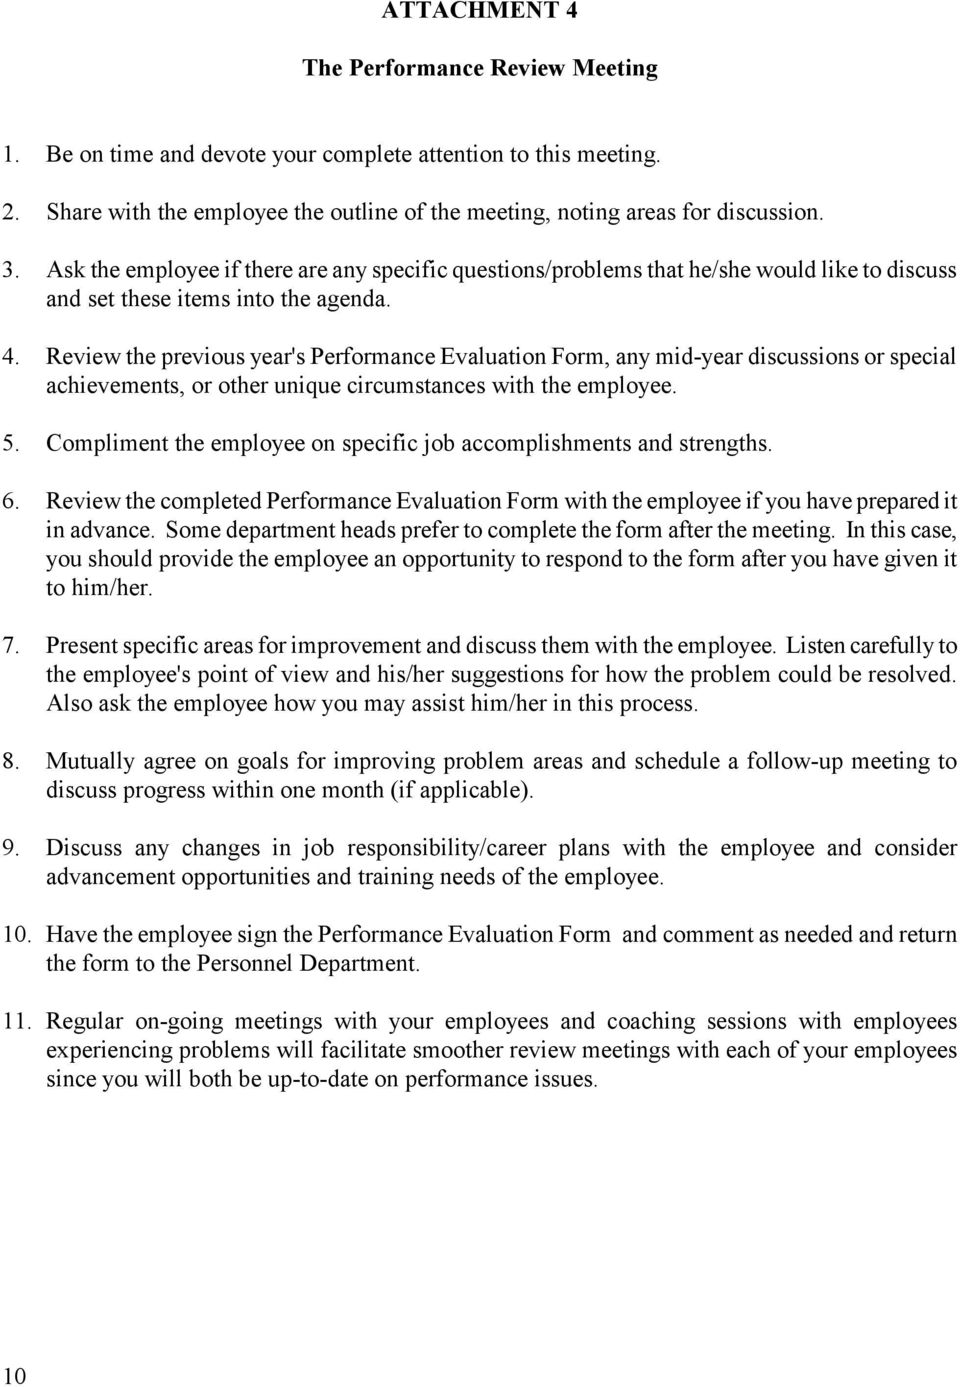 Review the previous year's Performance Evaluation Form, any mid-year discussions or special achievements, or other unique circumstances with the employee. 5.